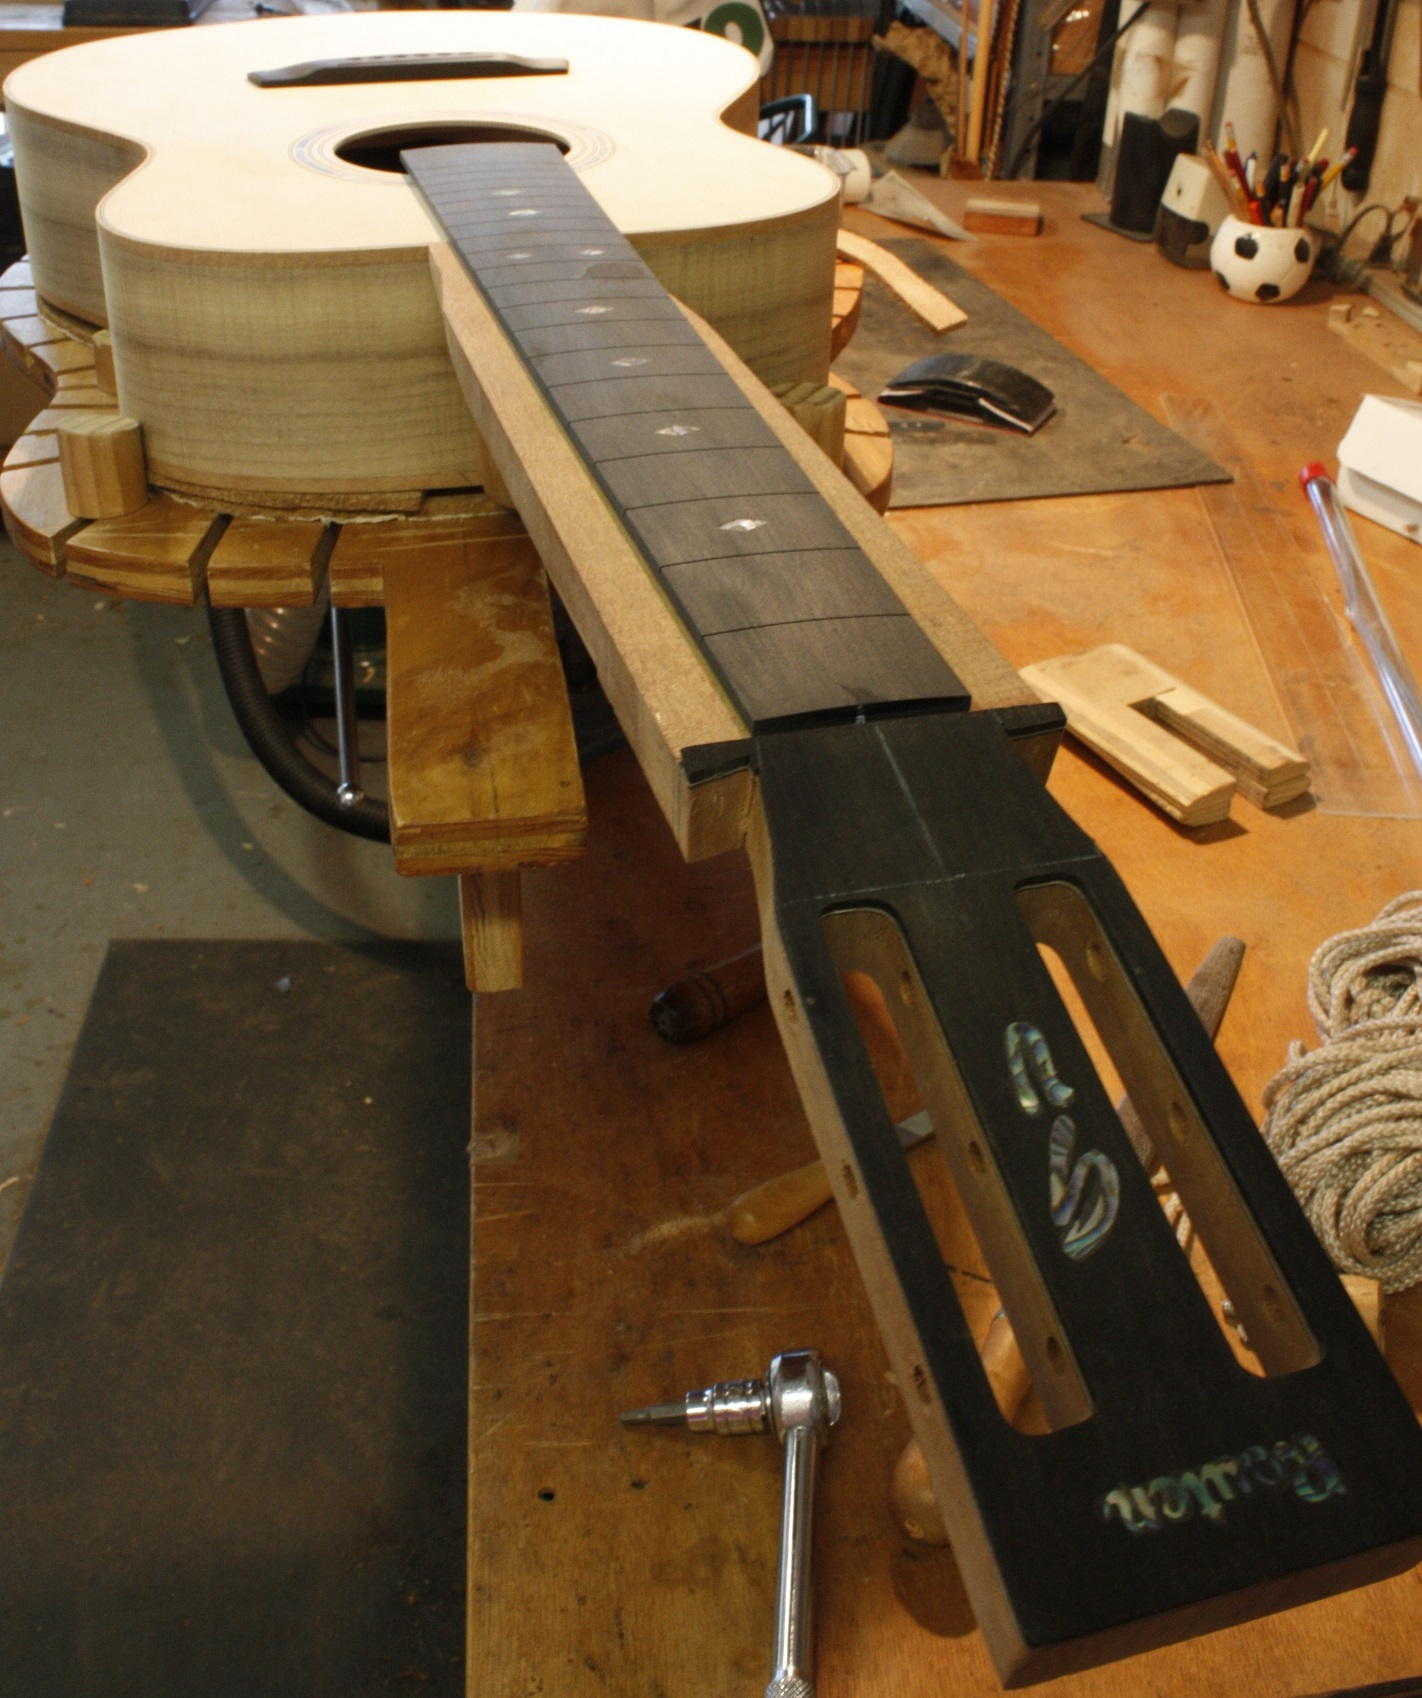 The neck is temporarily attached to the body to measure the angle. It is not totally shaped yet.